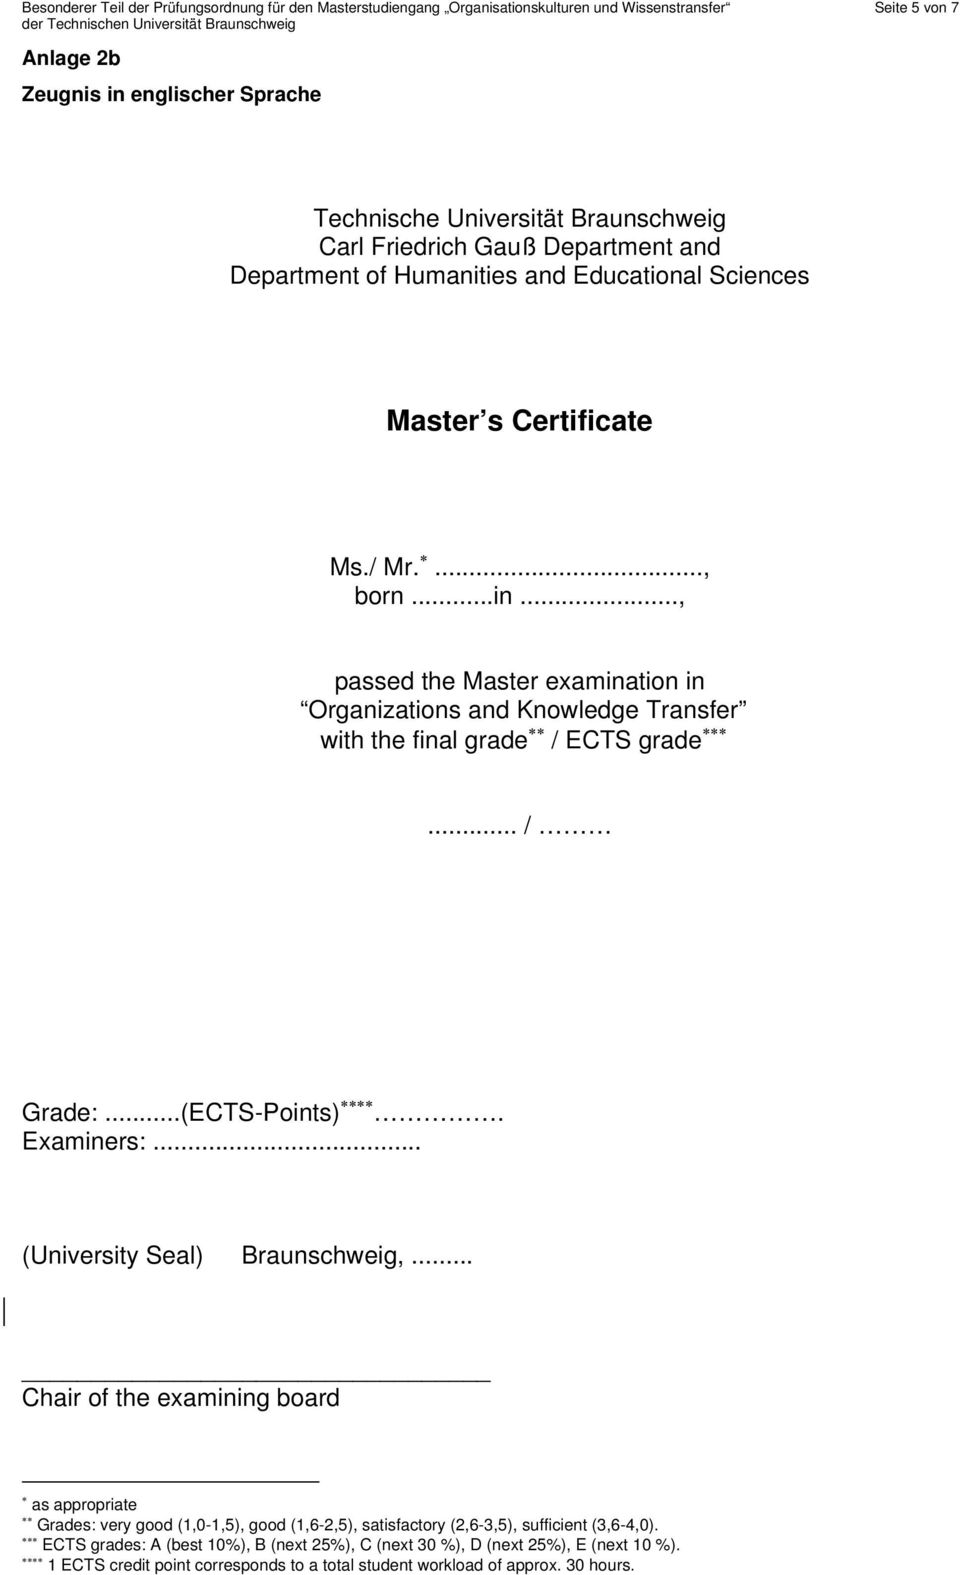 .., passed the Master examination in Organizations and Knowledge Transfer with the final grade / ECTS grade... / Grade:...(ECTS-Points). Examiners:... (University Seal) Braunschweig,.